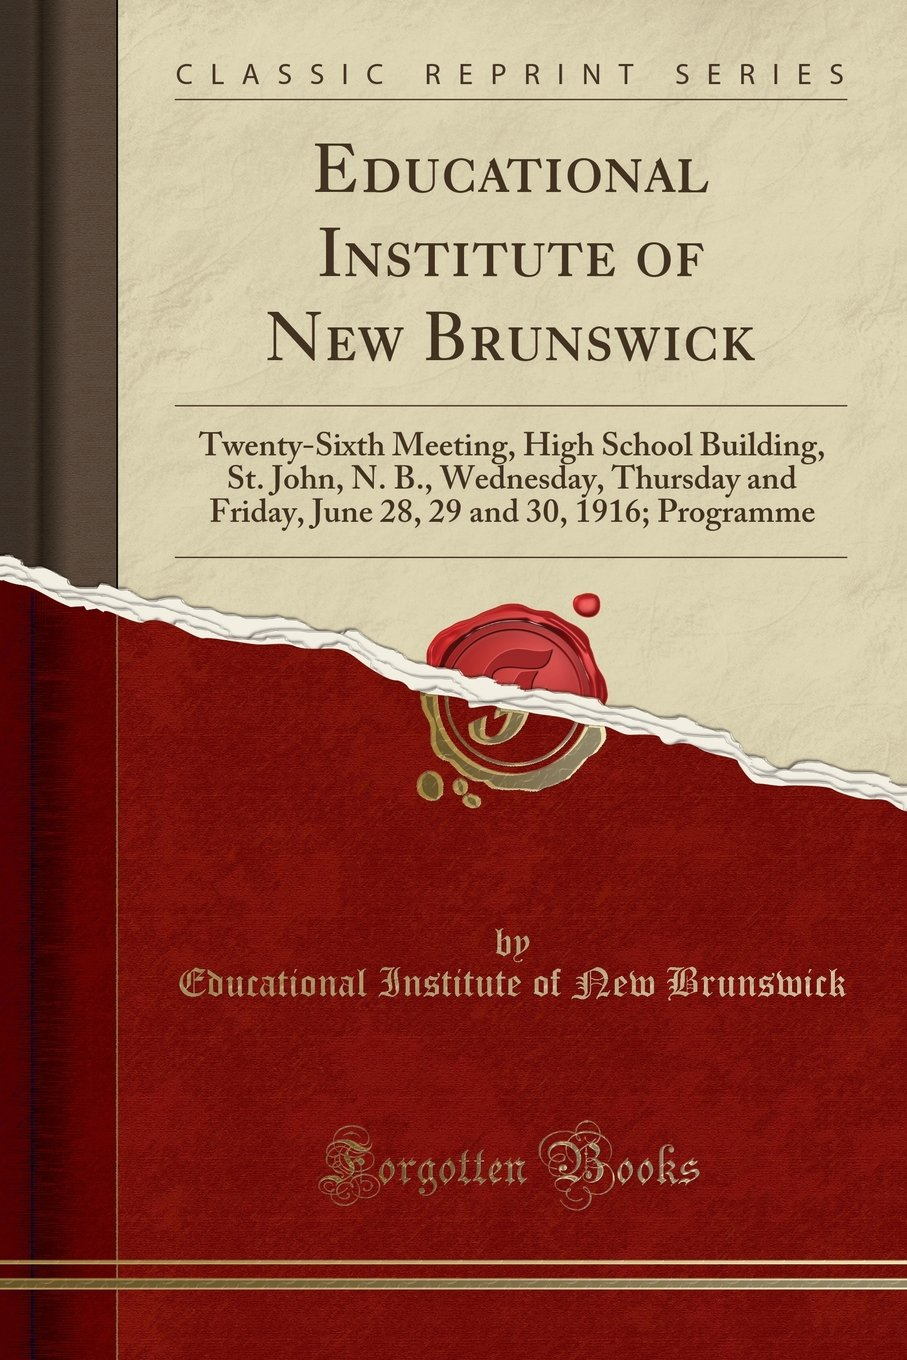 Download Educational Institute of New Brunswick: Twenty-Sixth Meeting, High School Building, St. John, N. B., Wednesday, Thursday and Friday, June 28, 29 and 30, 1916; Programme (Classic Reprint) PDF